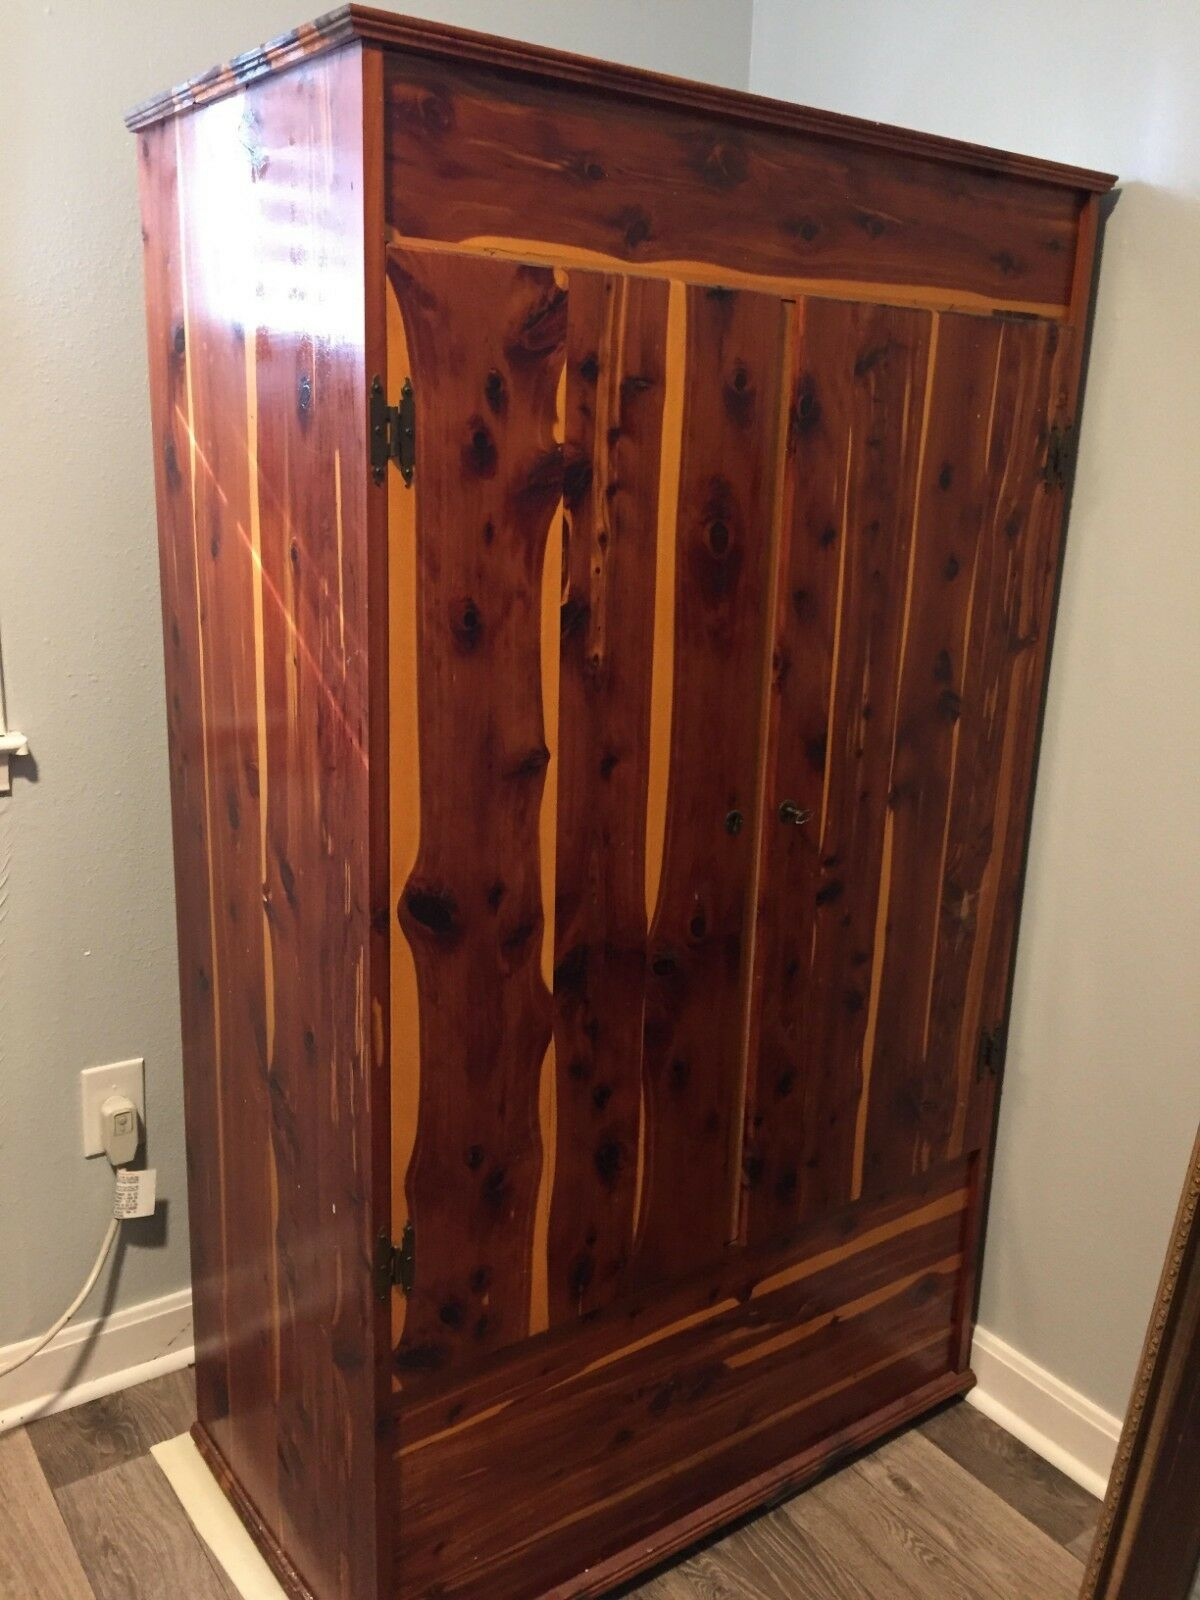 Delicieux Vintage Solid Cedar Wardrobe, Closet, Cabinet, Armoire 1 Of 2Only 1  Available ...